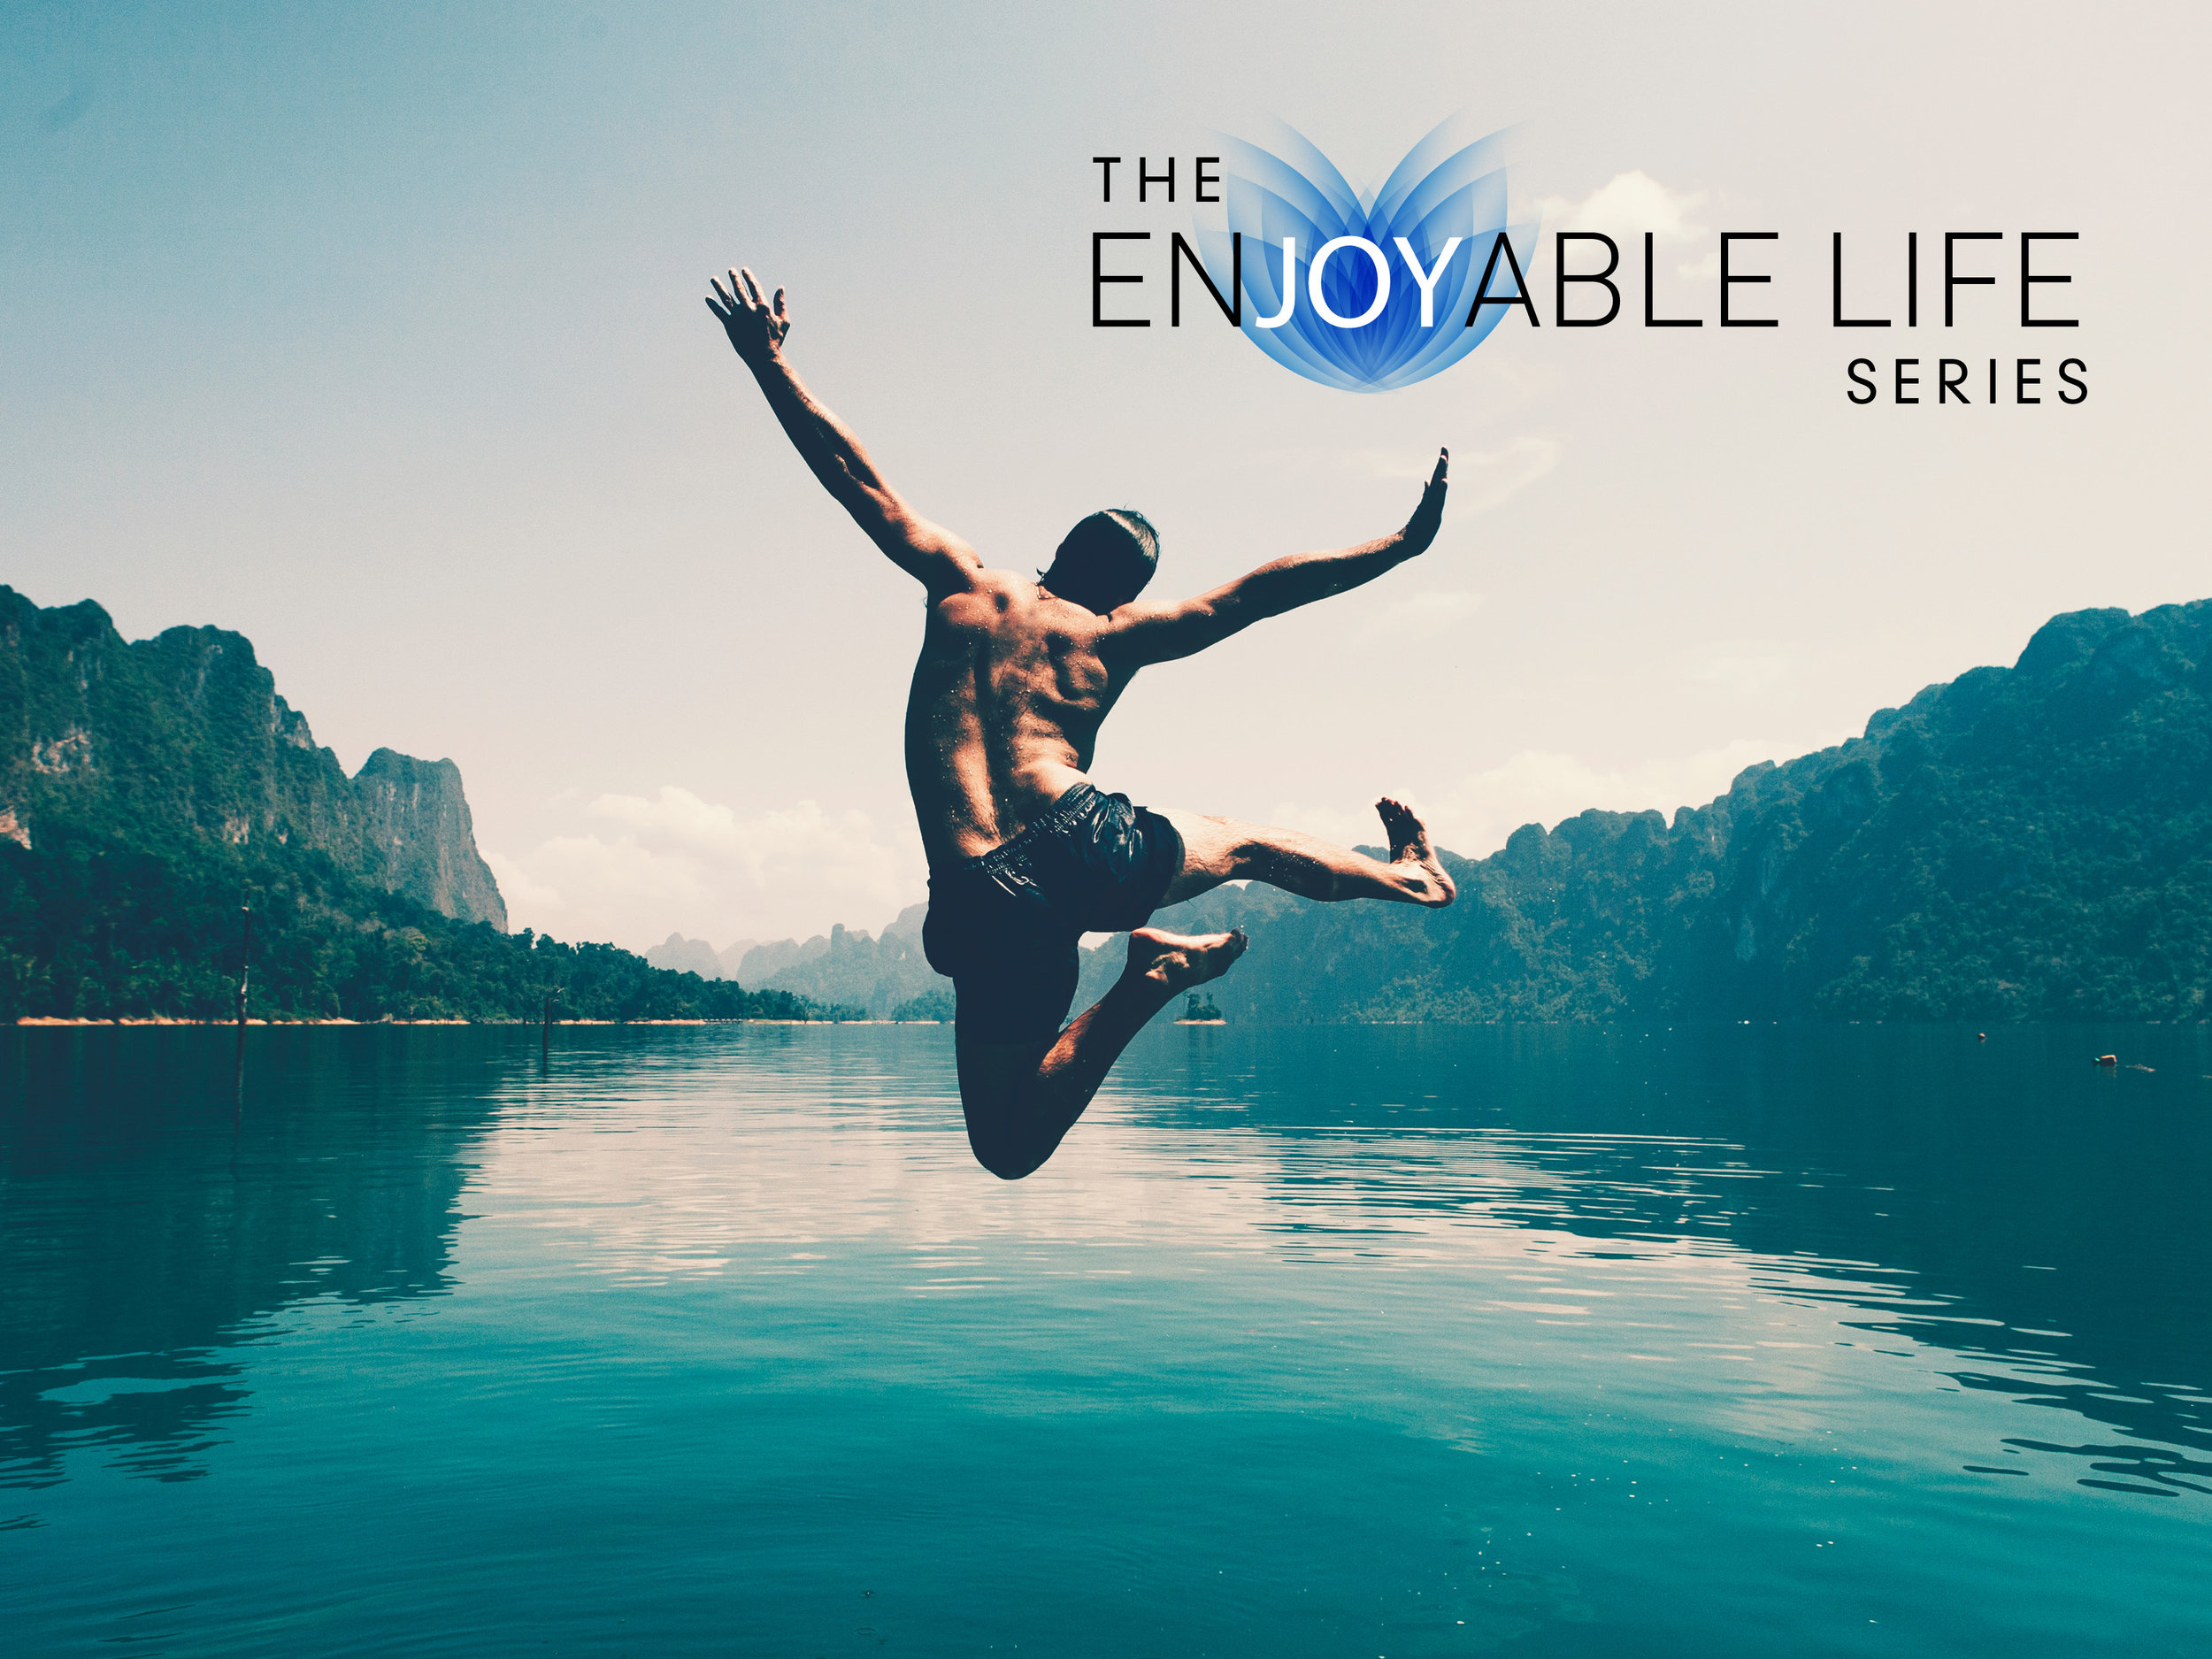 the enjoyable life series